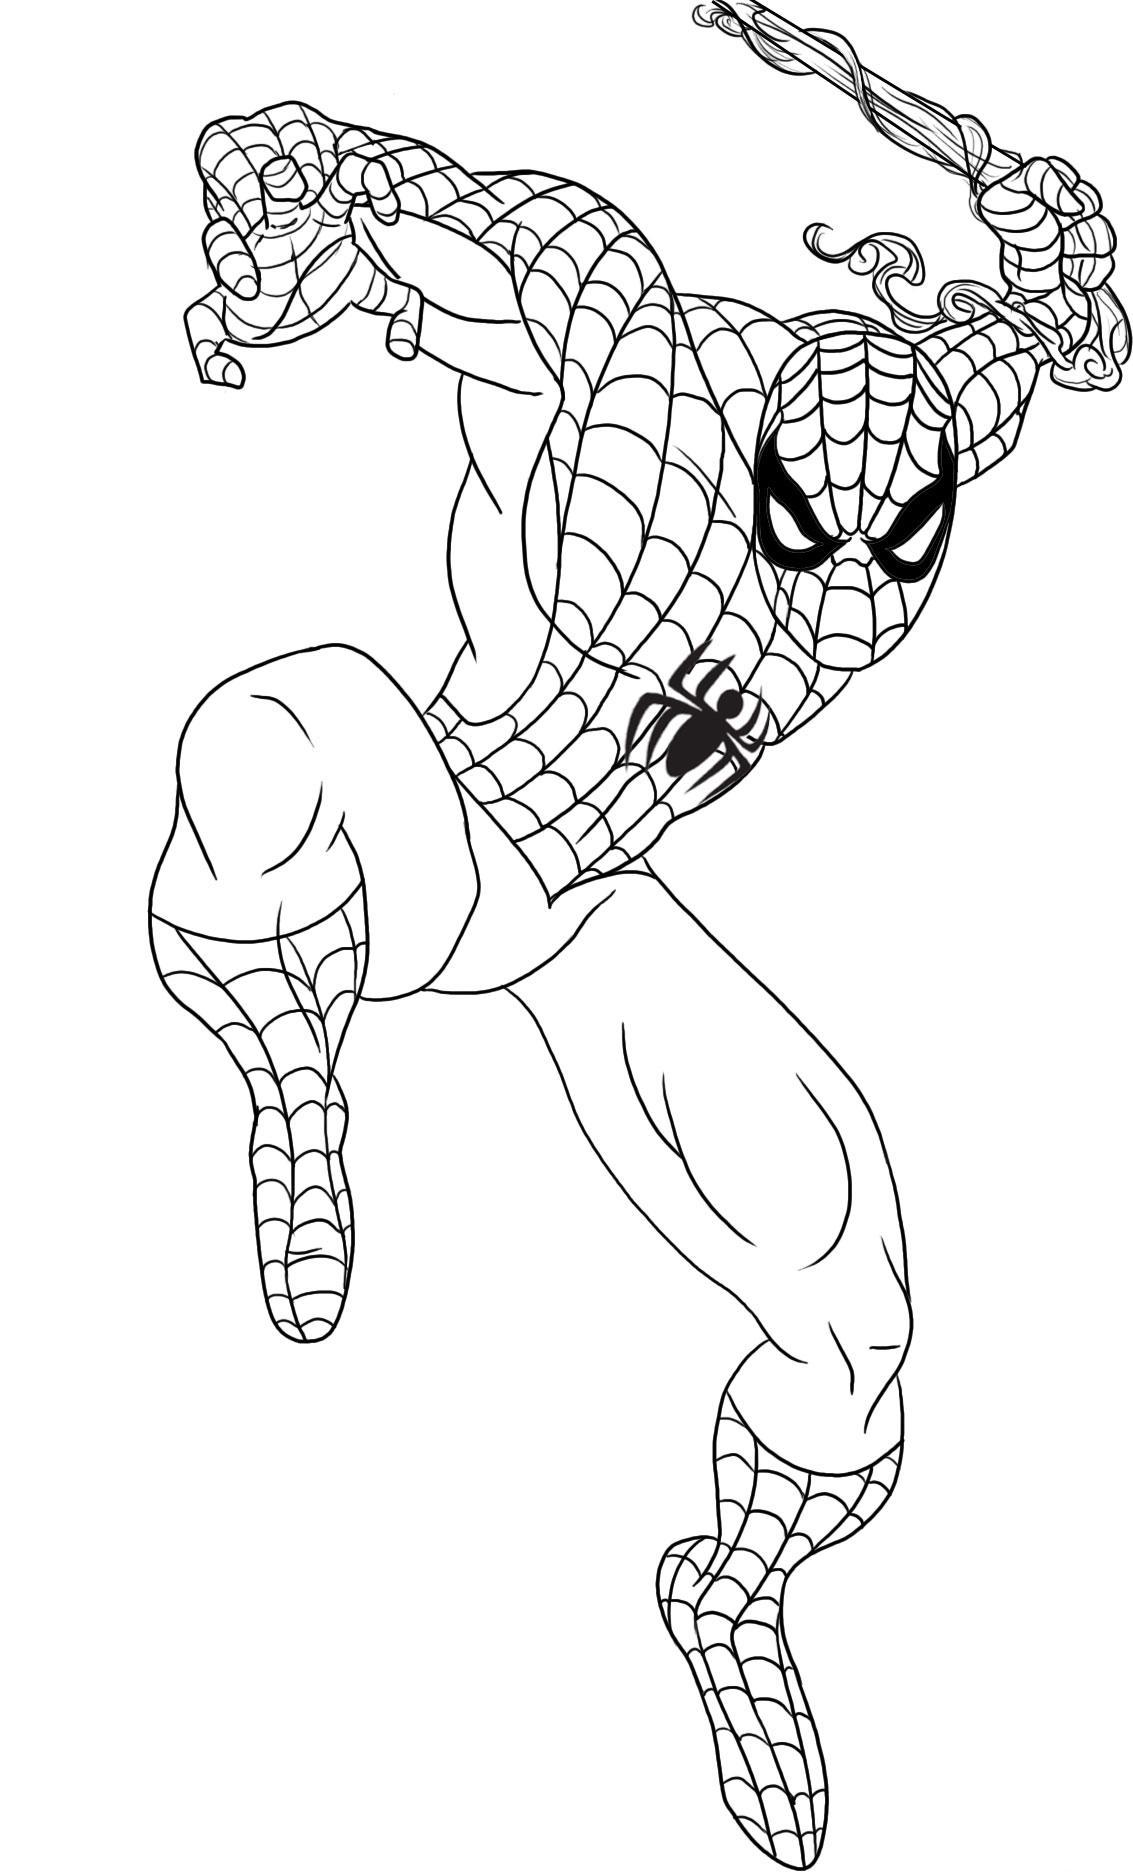 Stan Lee Drawing Spiderman at GetDrawings.com | Free for personal ...